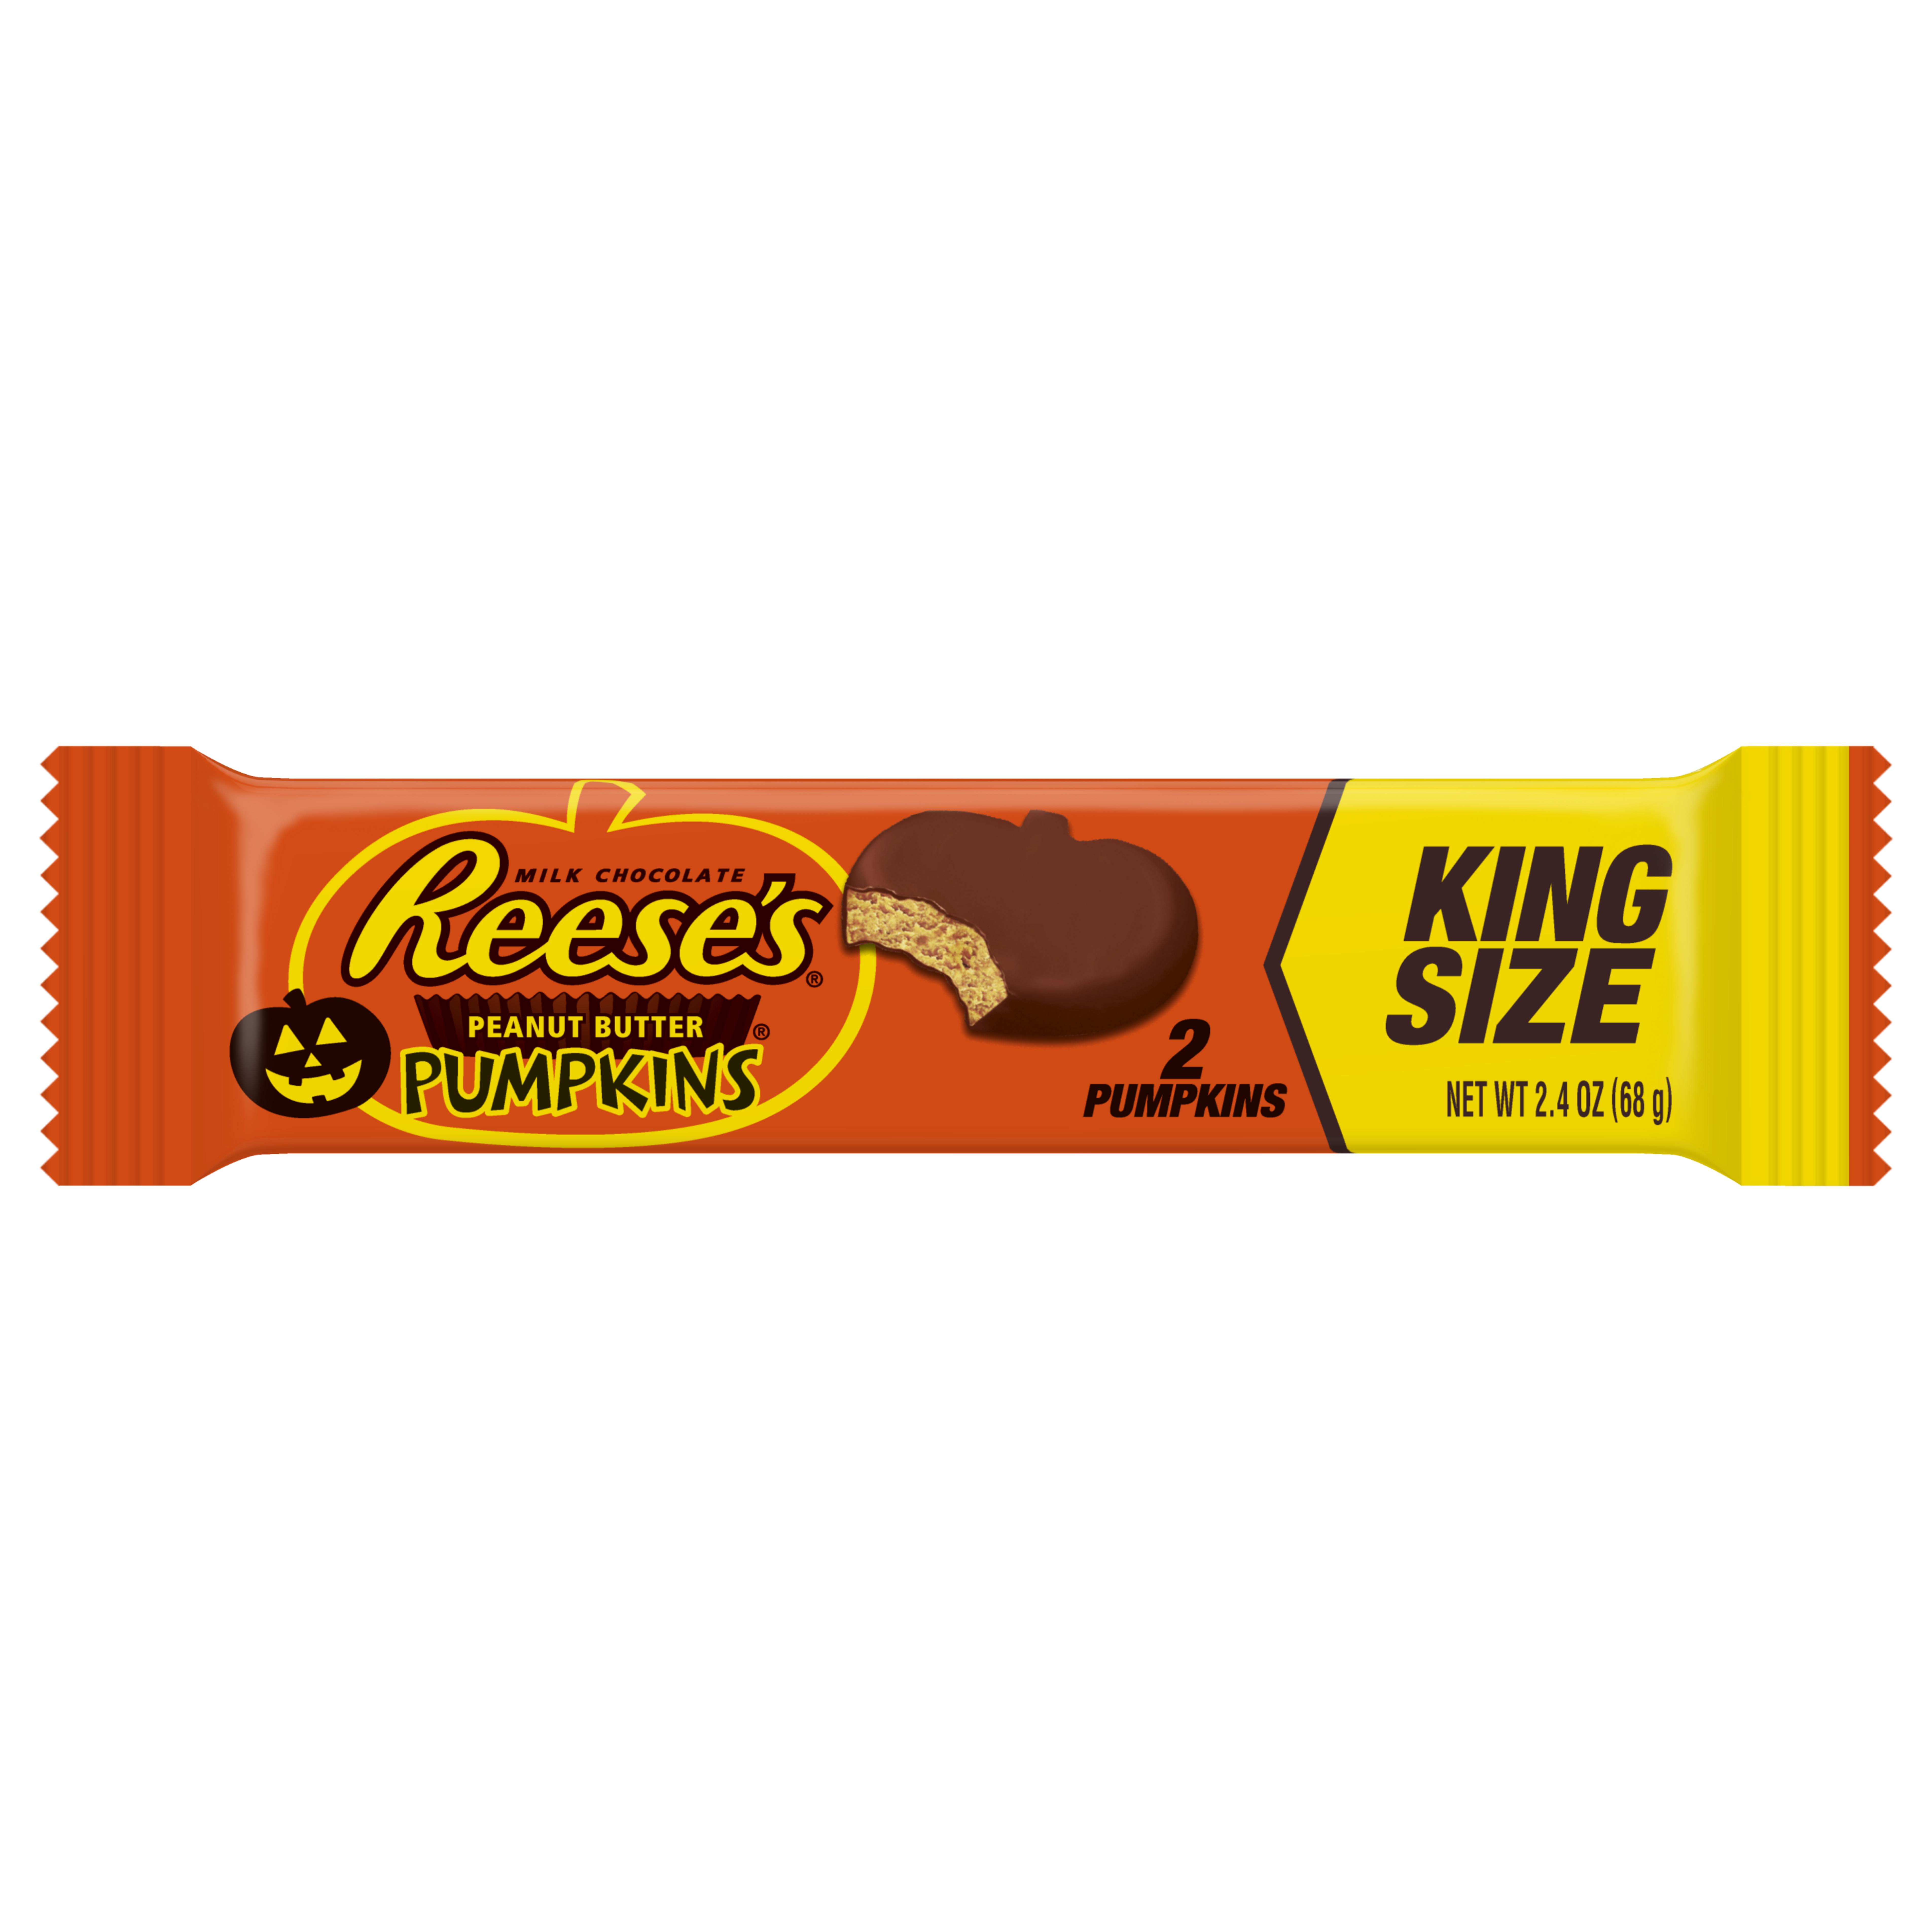 Hershey's Reese's Pumpkins Peanut Butter Cups King Size, 2.4 Oz.